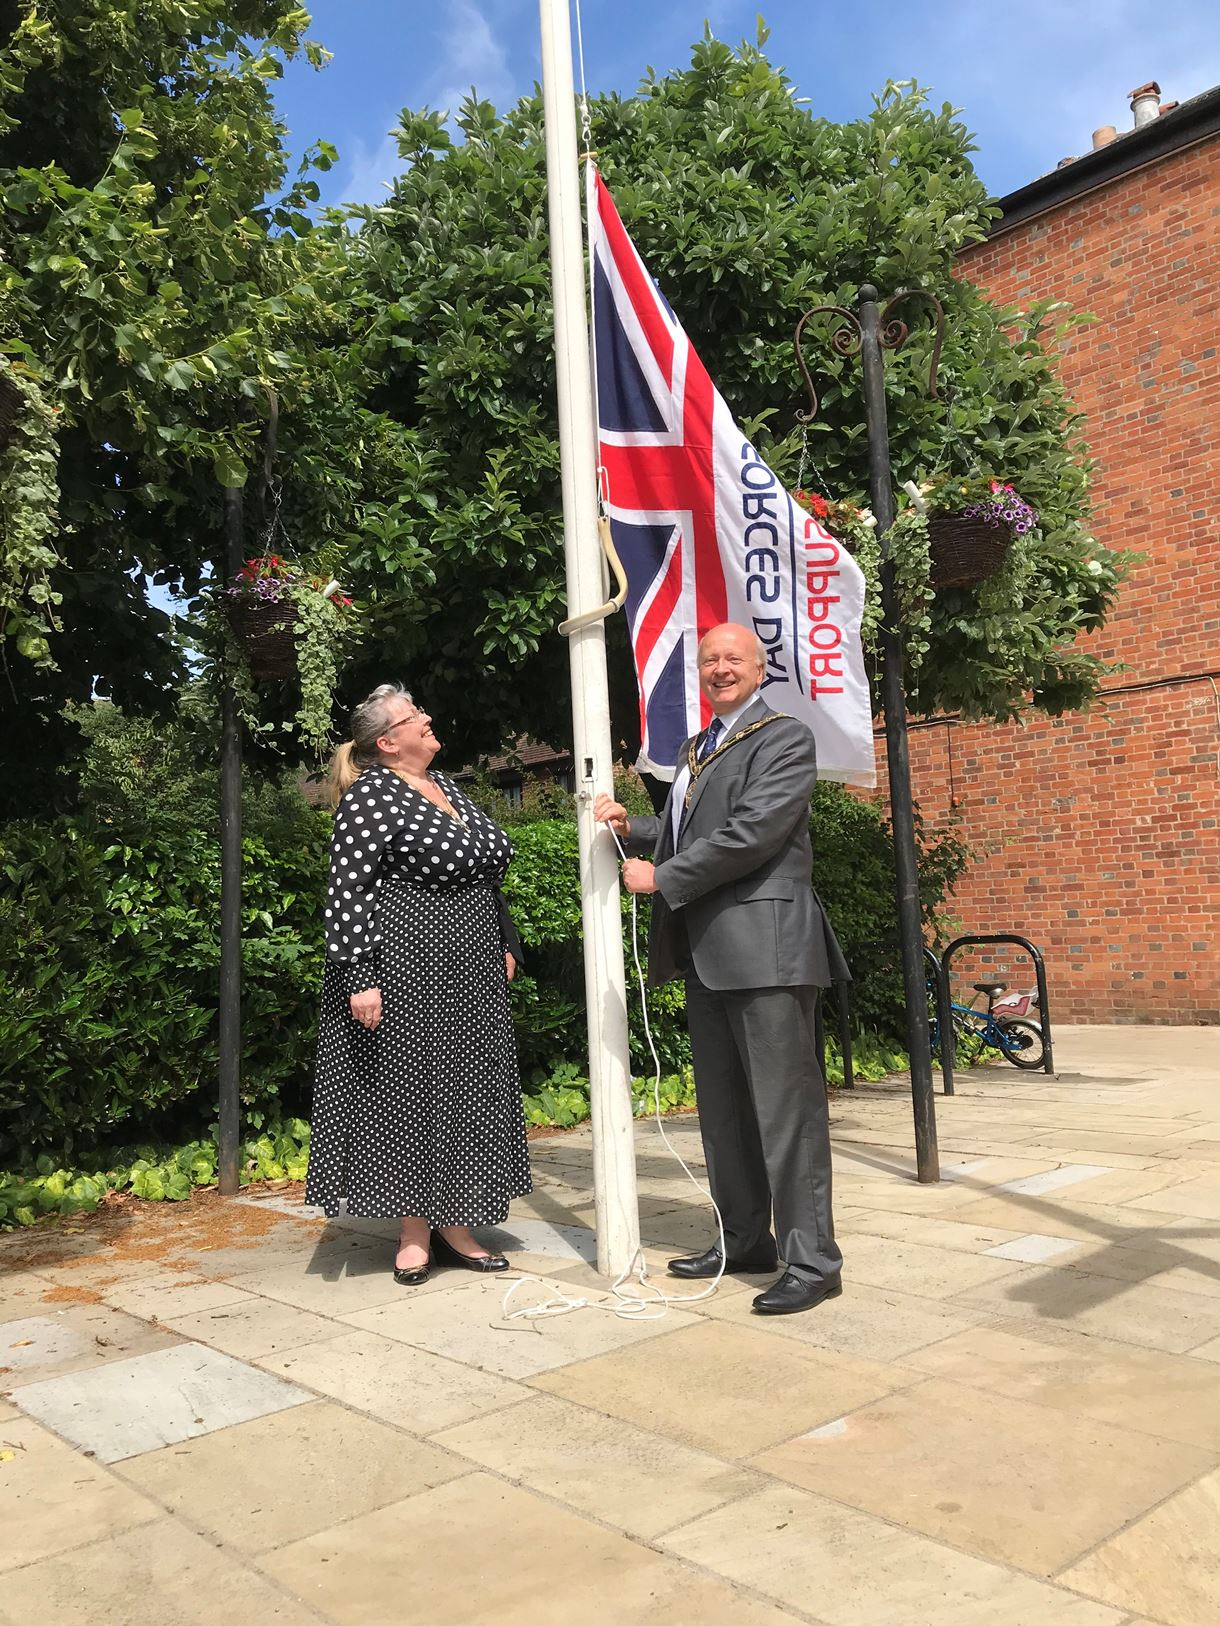 Mayor councillor Hatley raises the flag in Romsey